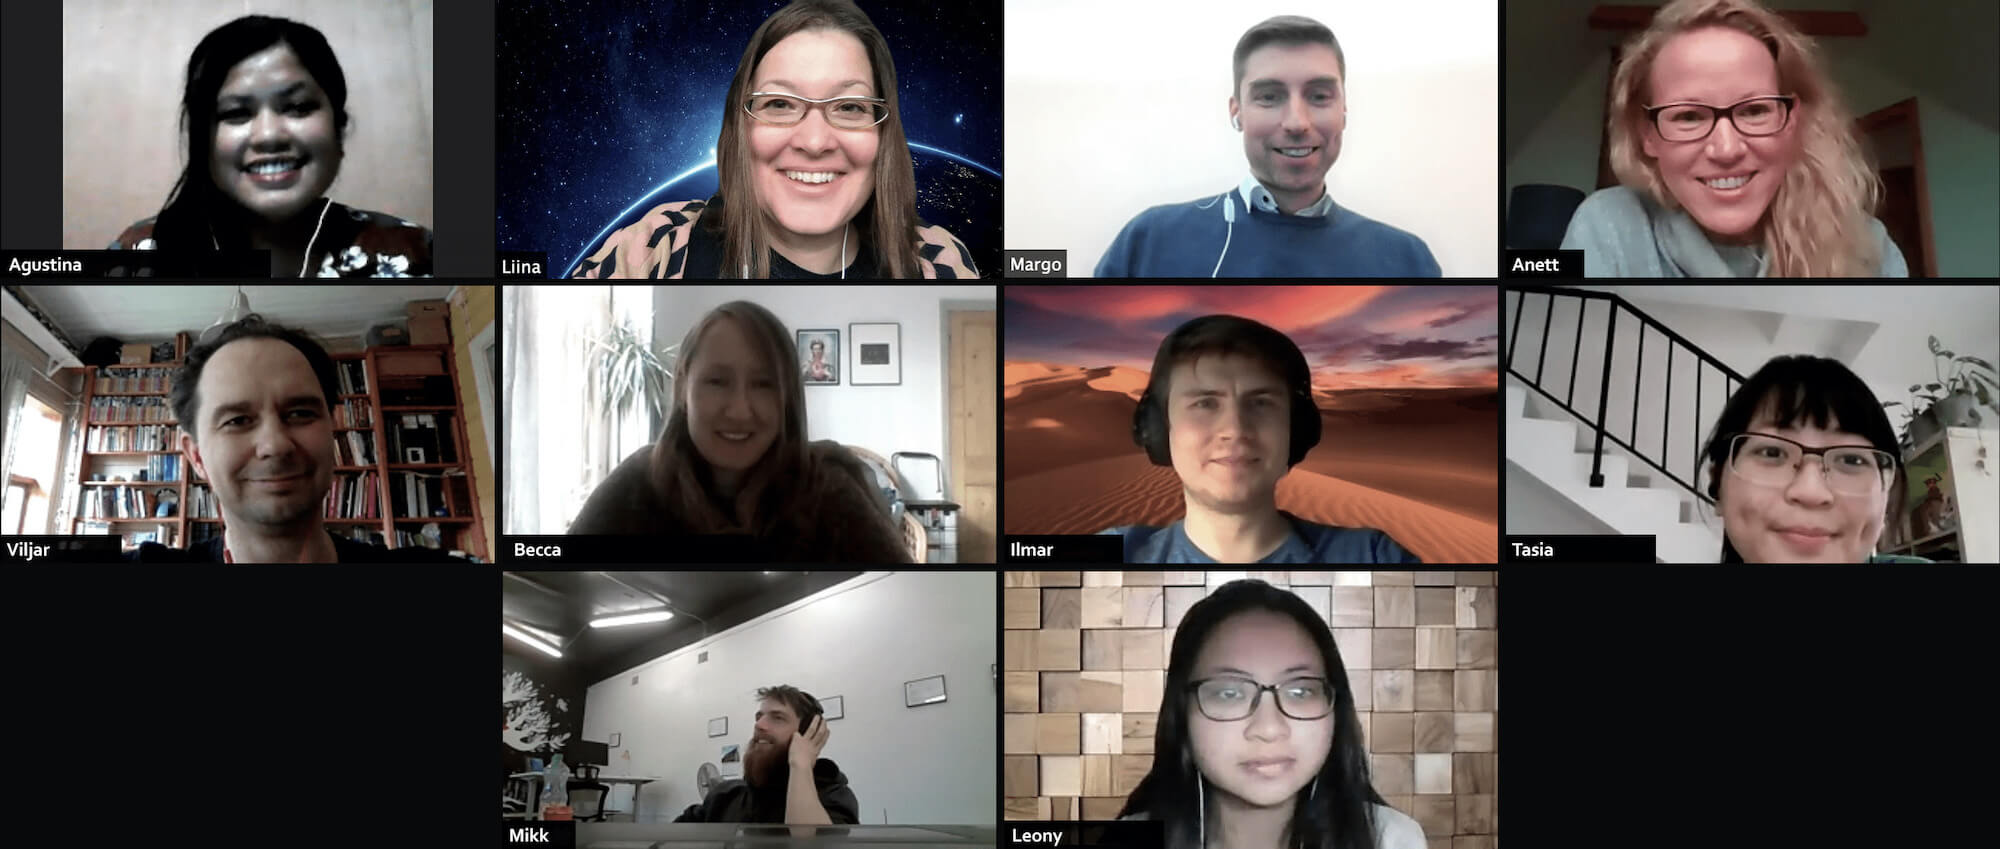 Screenshot of Citizen OS team members in a Zoom call